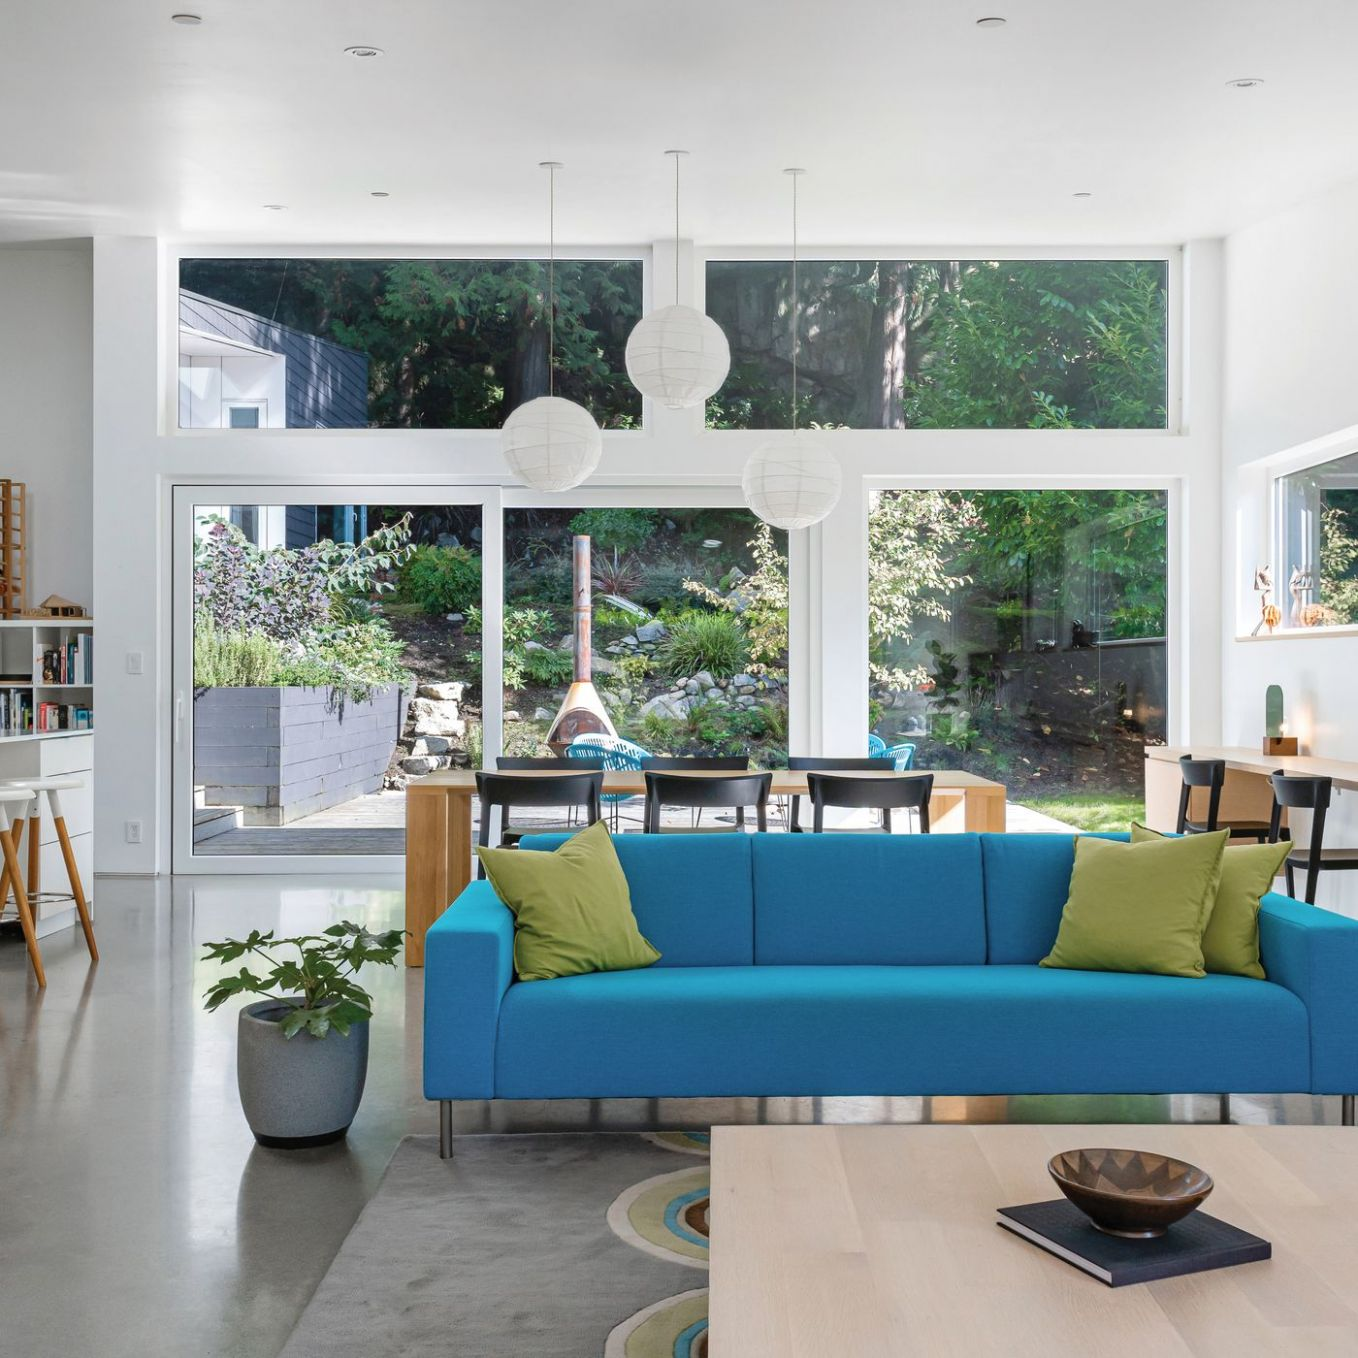 Statement decor ideas to steal from a Vancouver home - Curbed